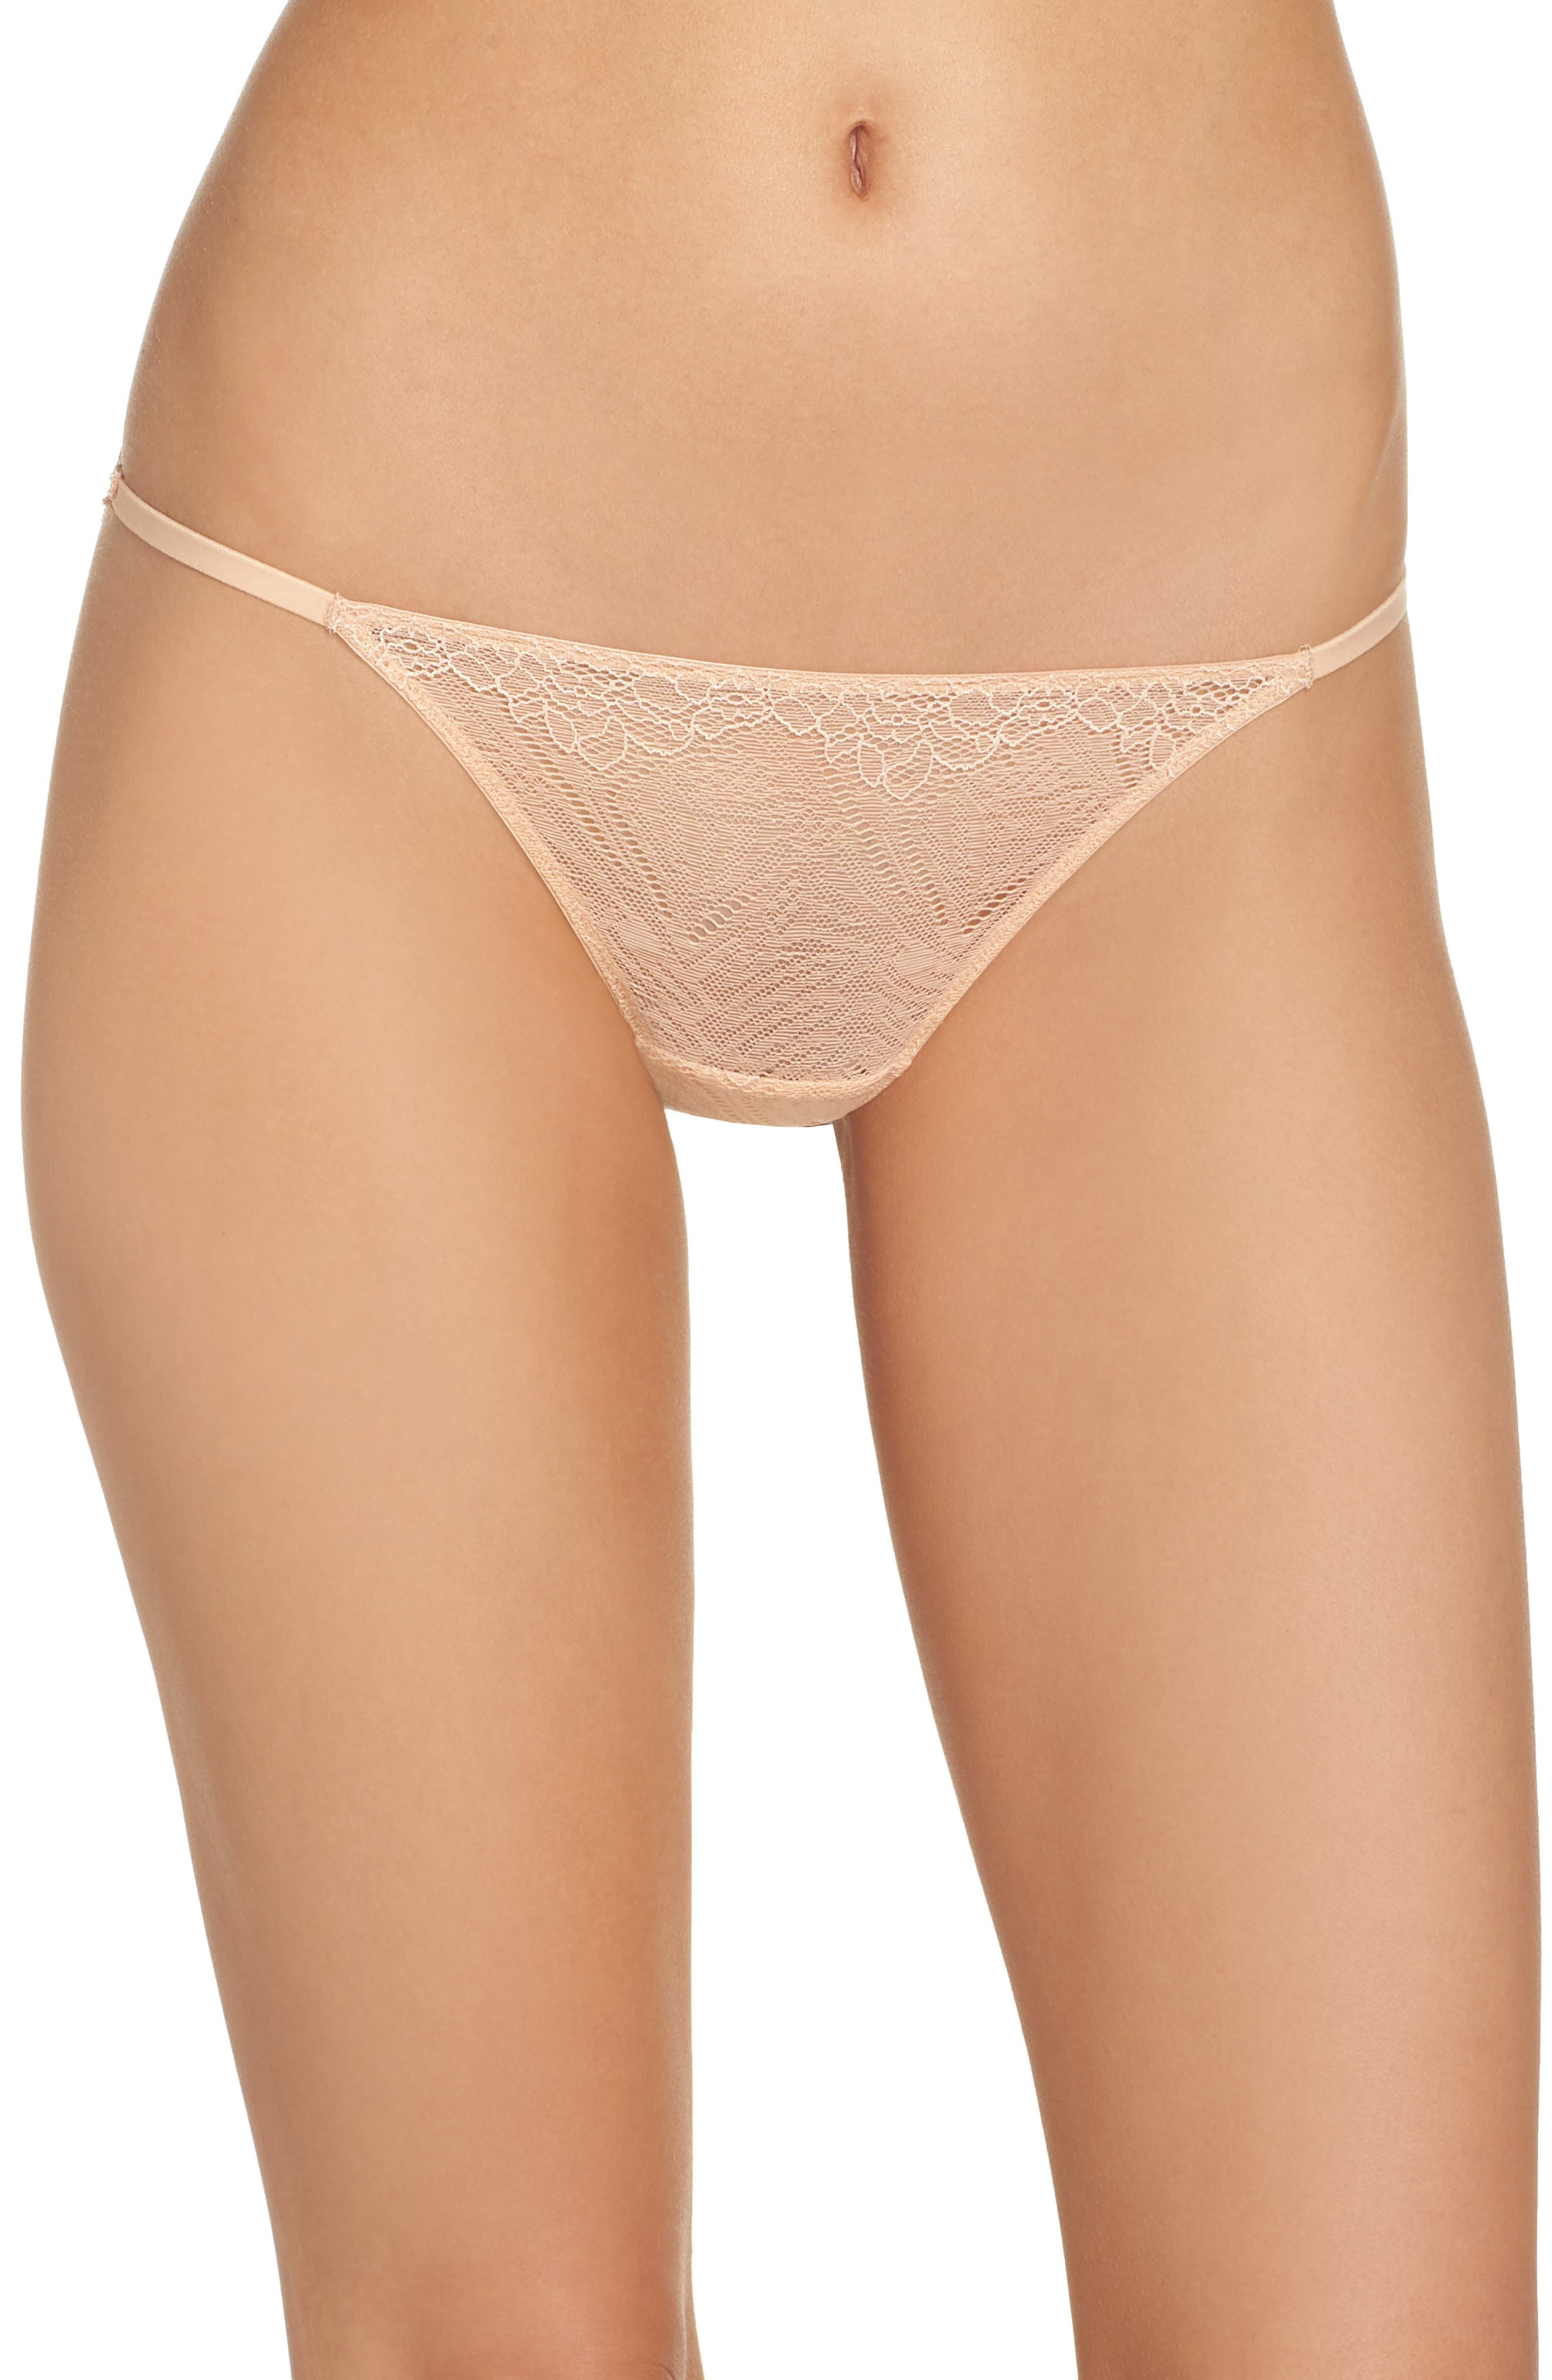 Lace String Bikini,                         Main,                         color, VOILE PINK